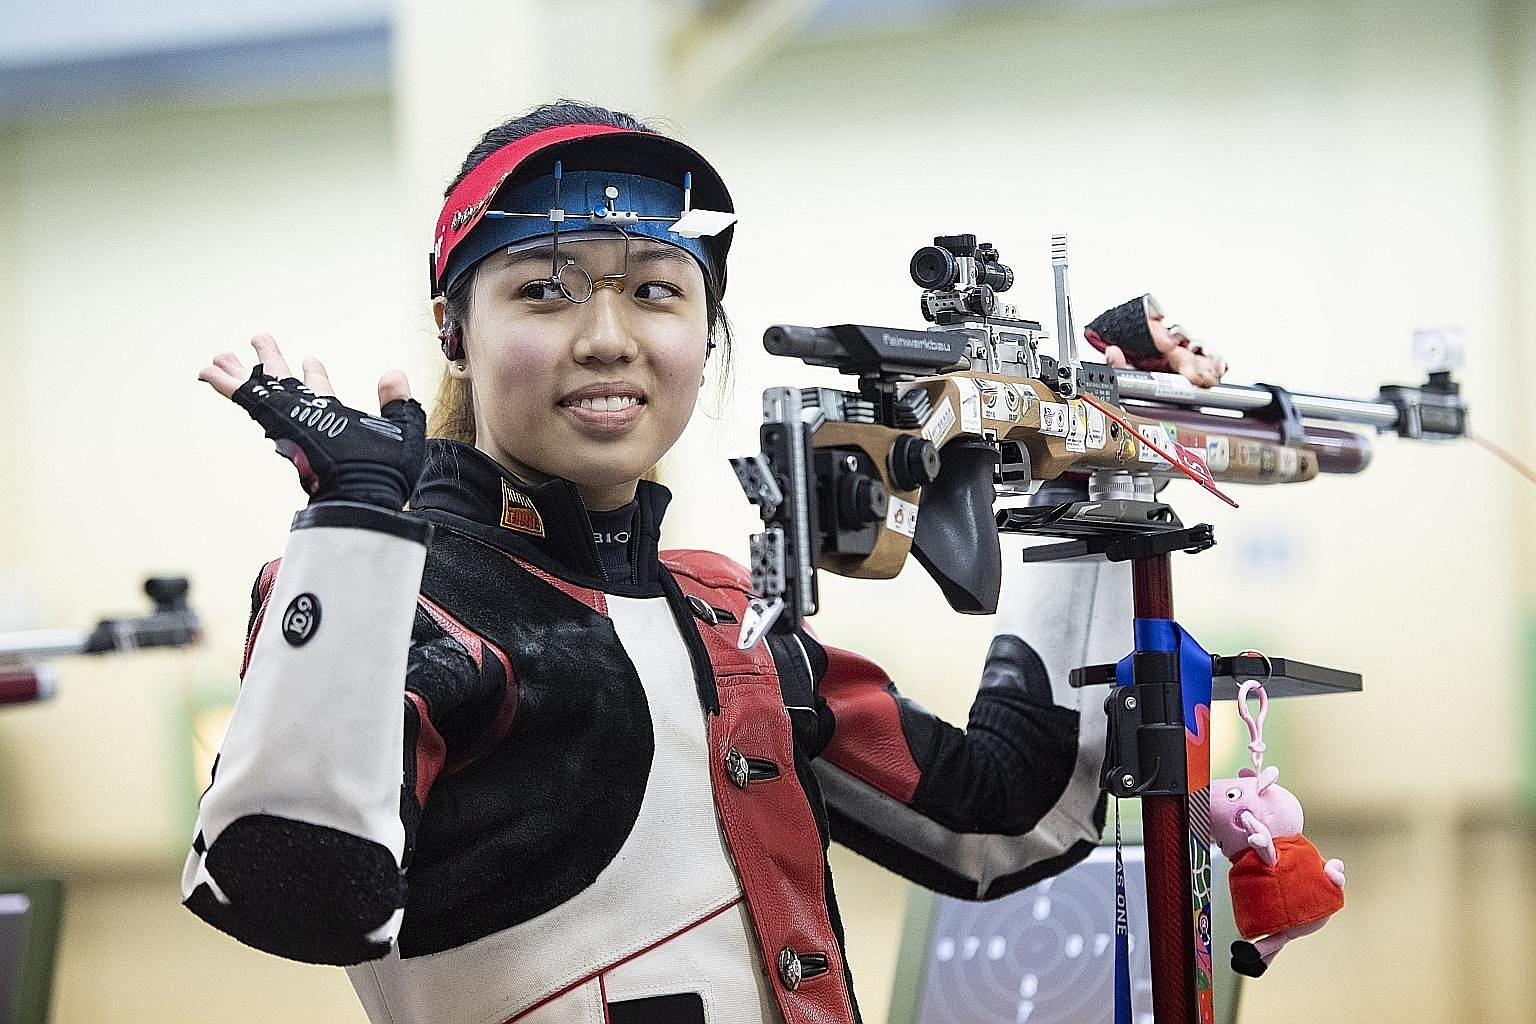 Adele Tan at last month's SEA Games in the Philippines, where she won bronze medals in the women's 10m air rifle and mixed 10m air rifle.